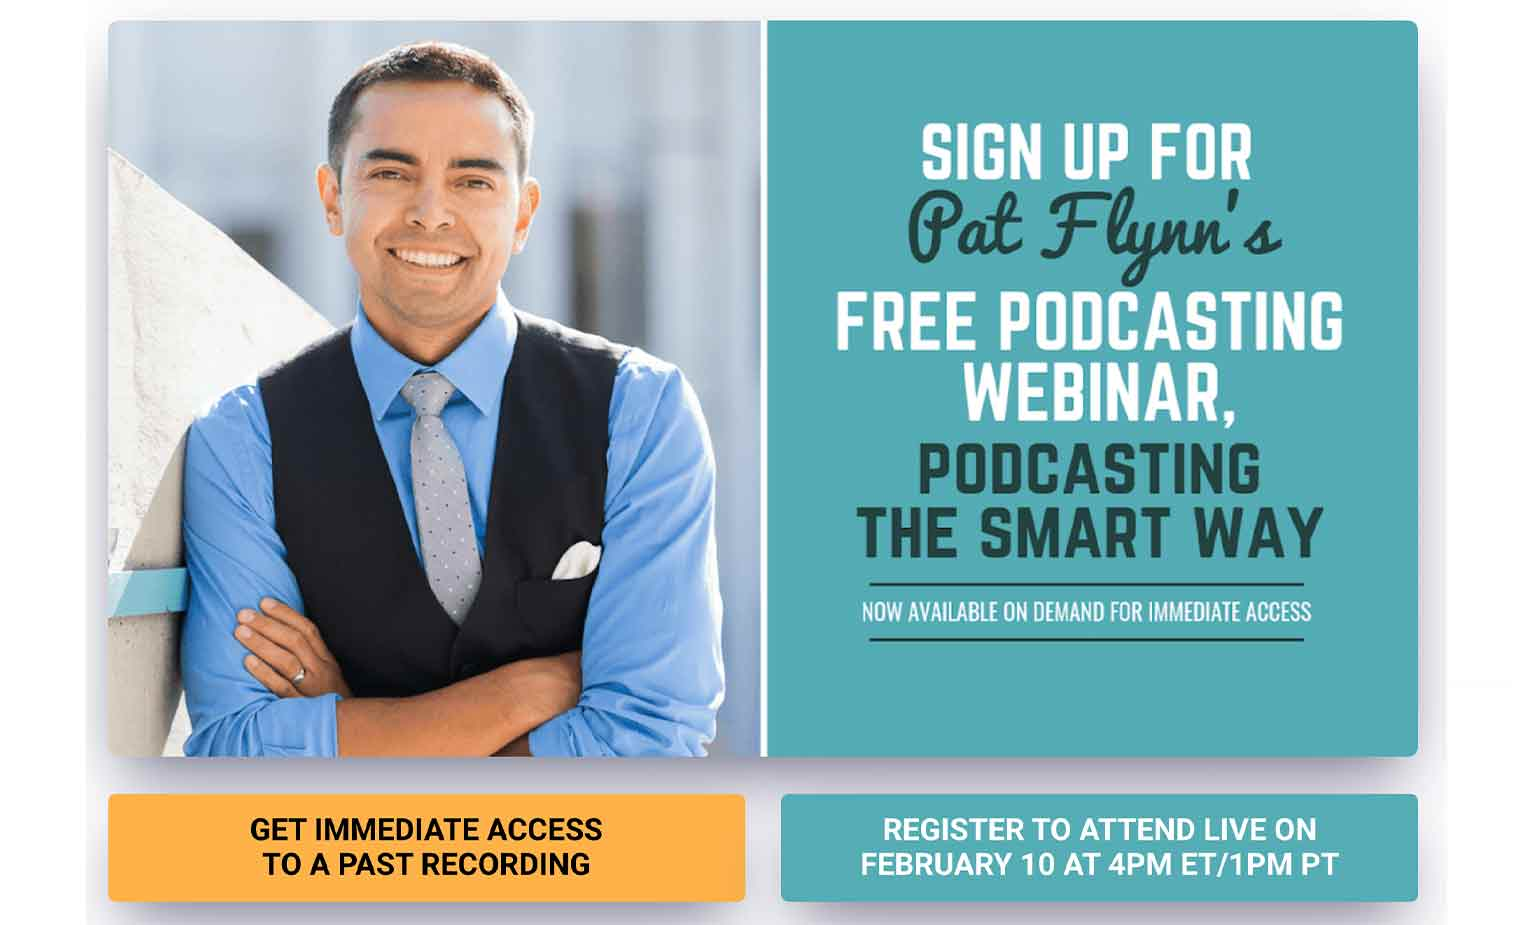 Here's a lead magnet example from podcasting expert Pat Flynn.